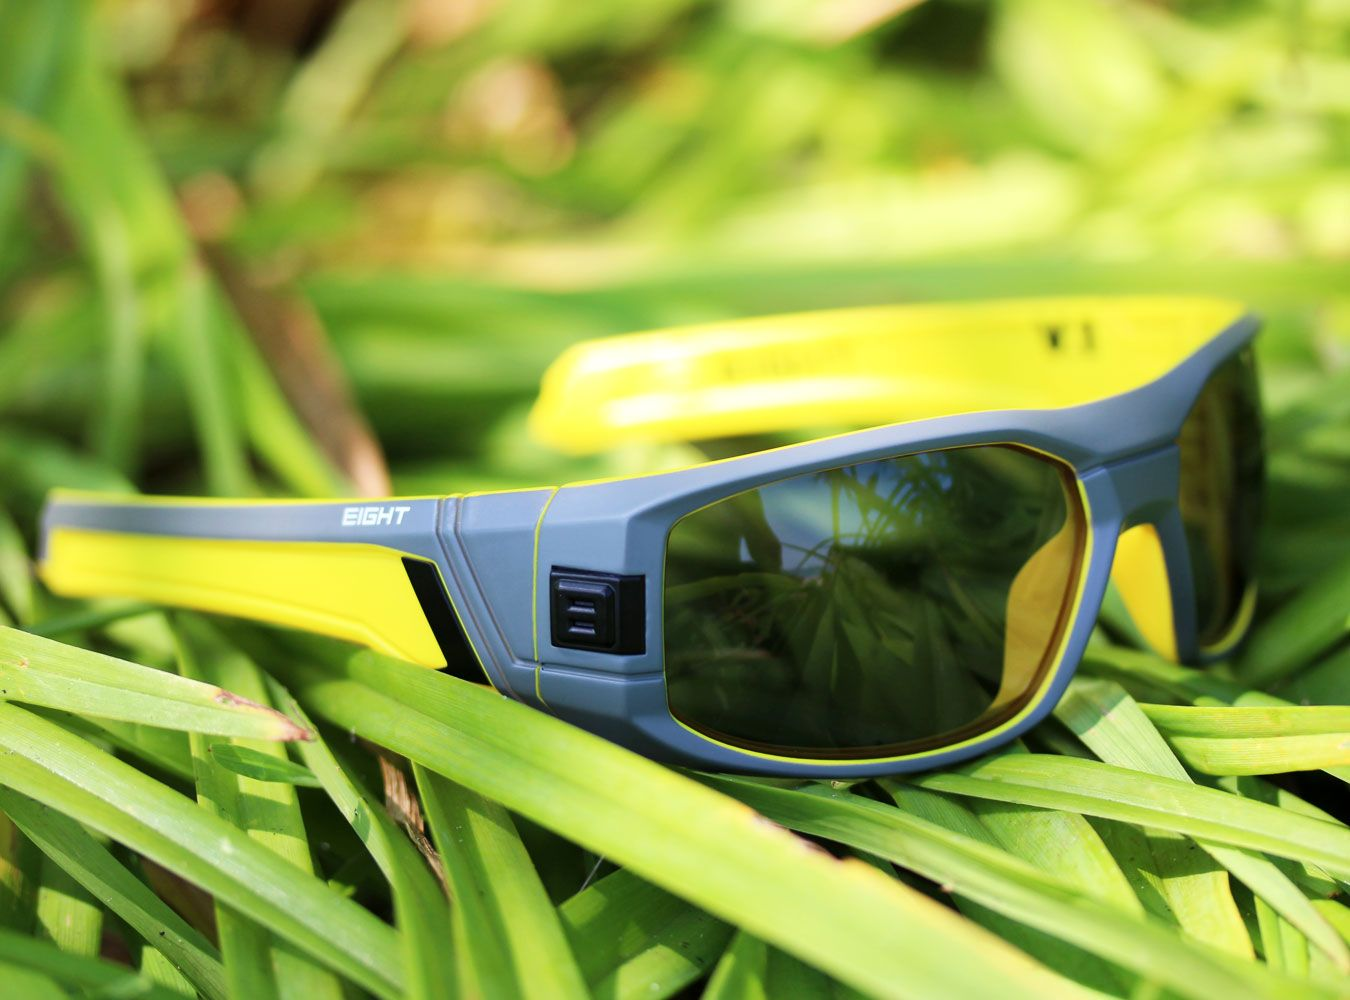 0422fff98f Matte Gray Yellow V.1 sunglasses from EIGHT Eyewear WWW.IWEAR8.COM  8eyewear   sunglasses  shades  cool  mensfashion  fashion  style  summer  eight   sports   ...